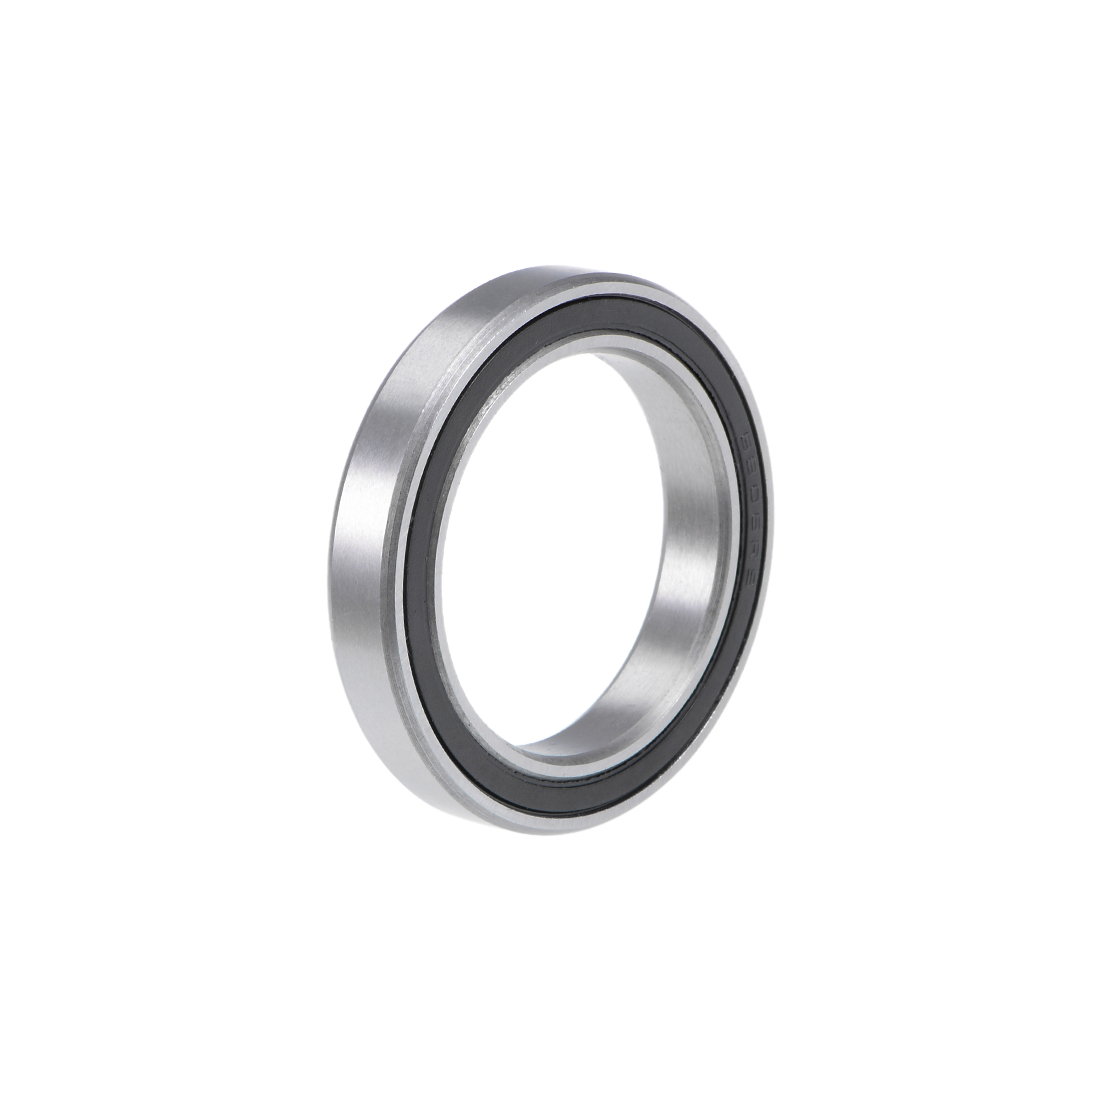 6806-2RS Deep Groove Ball Bearing 30x42x7mm Double Sealed Chrome Steel Bearings